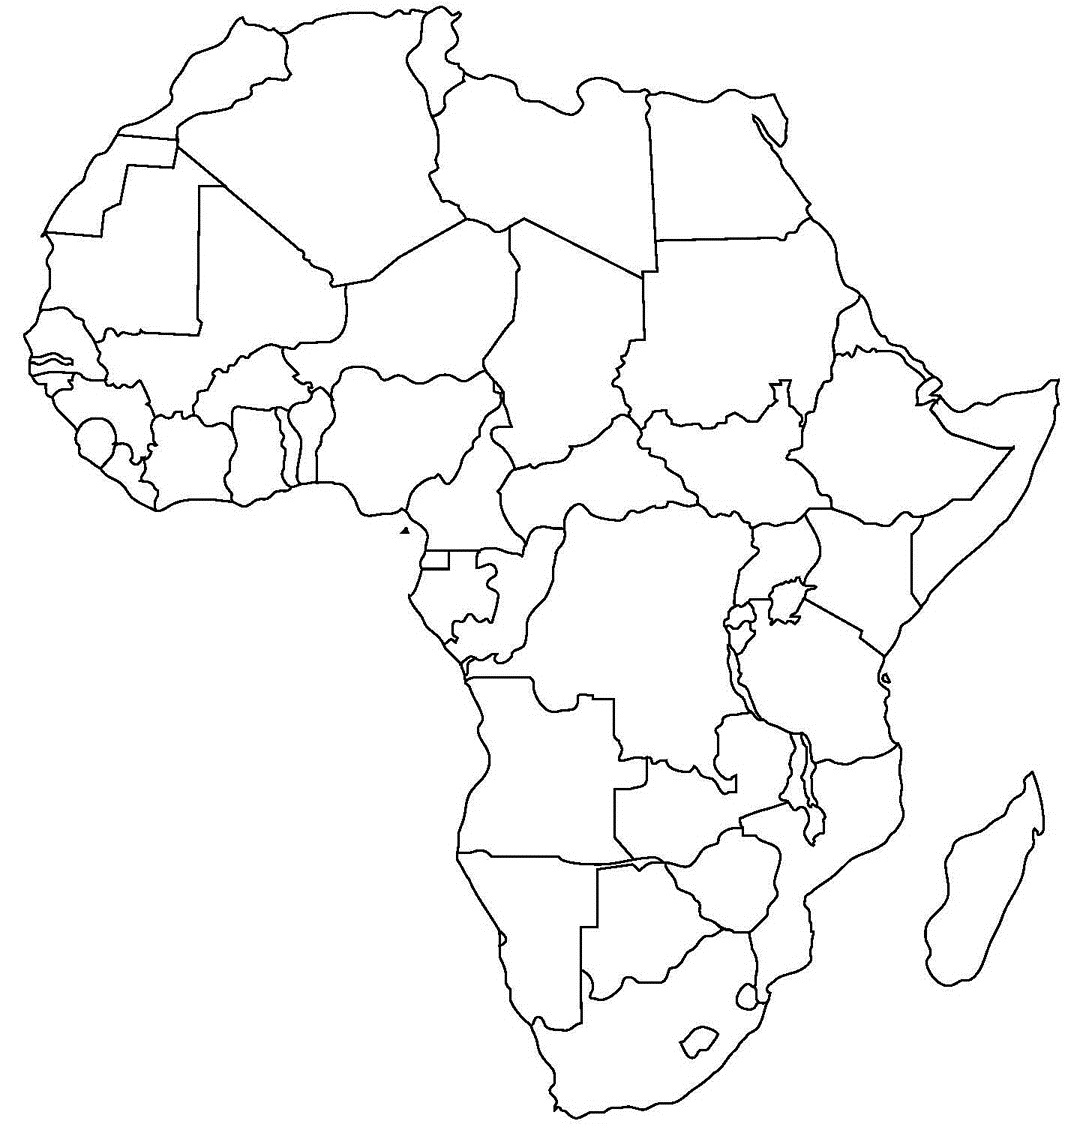 Blank Worksheet For Africa S Rivers